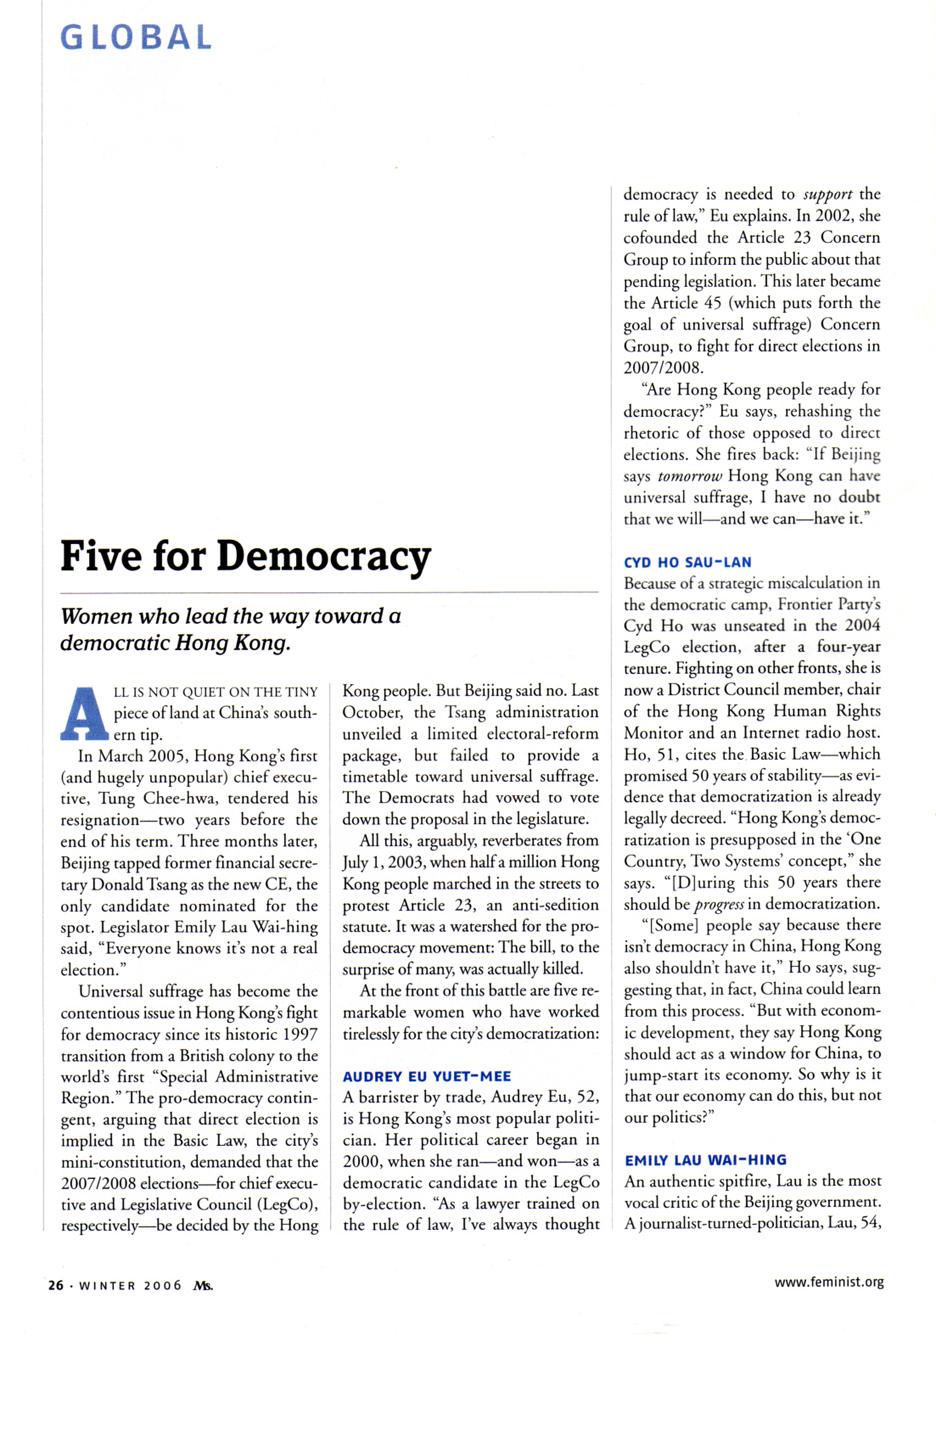 Five for democracy 1